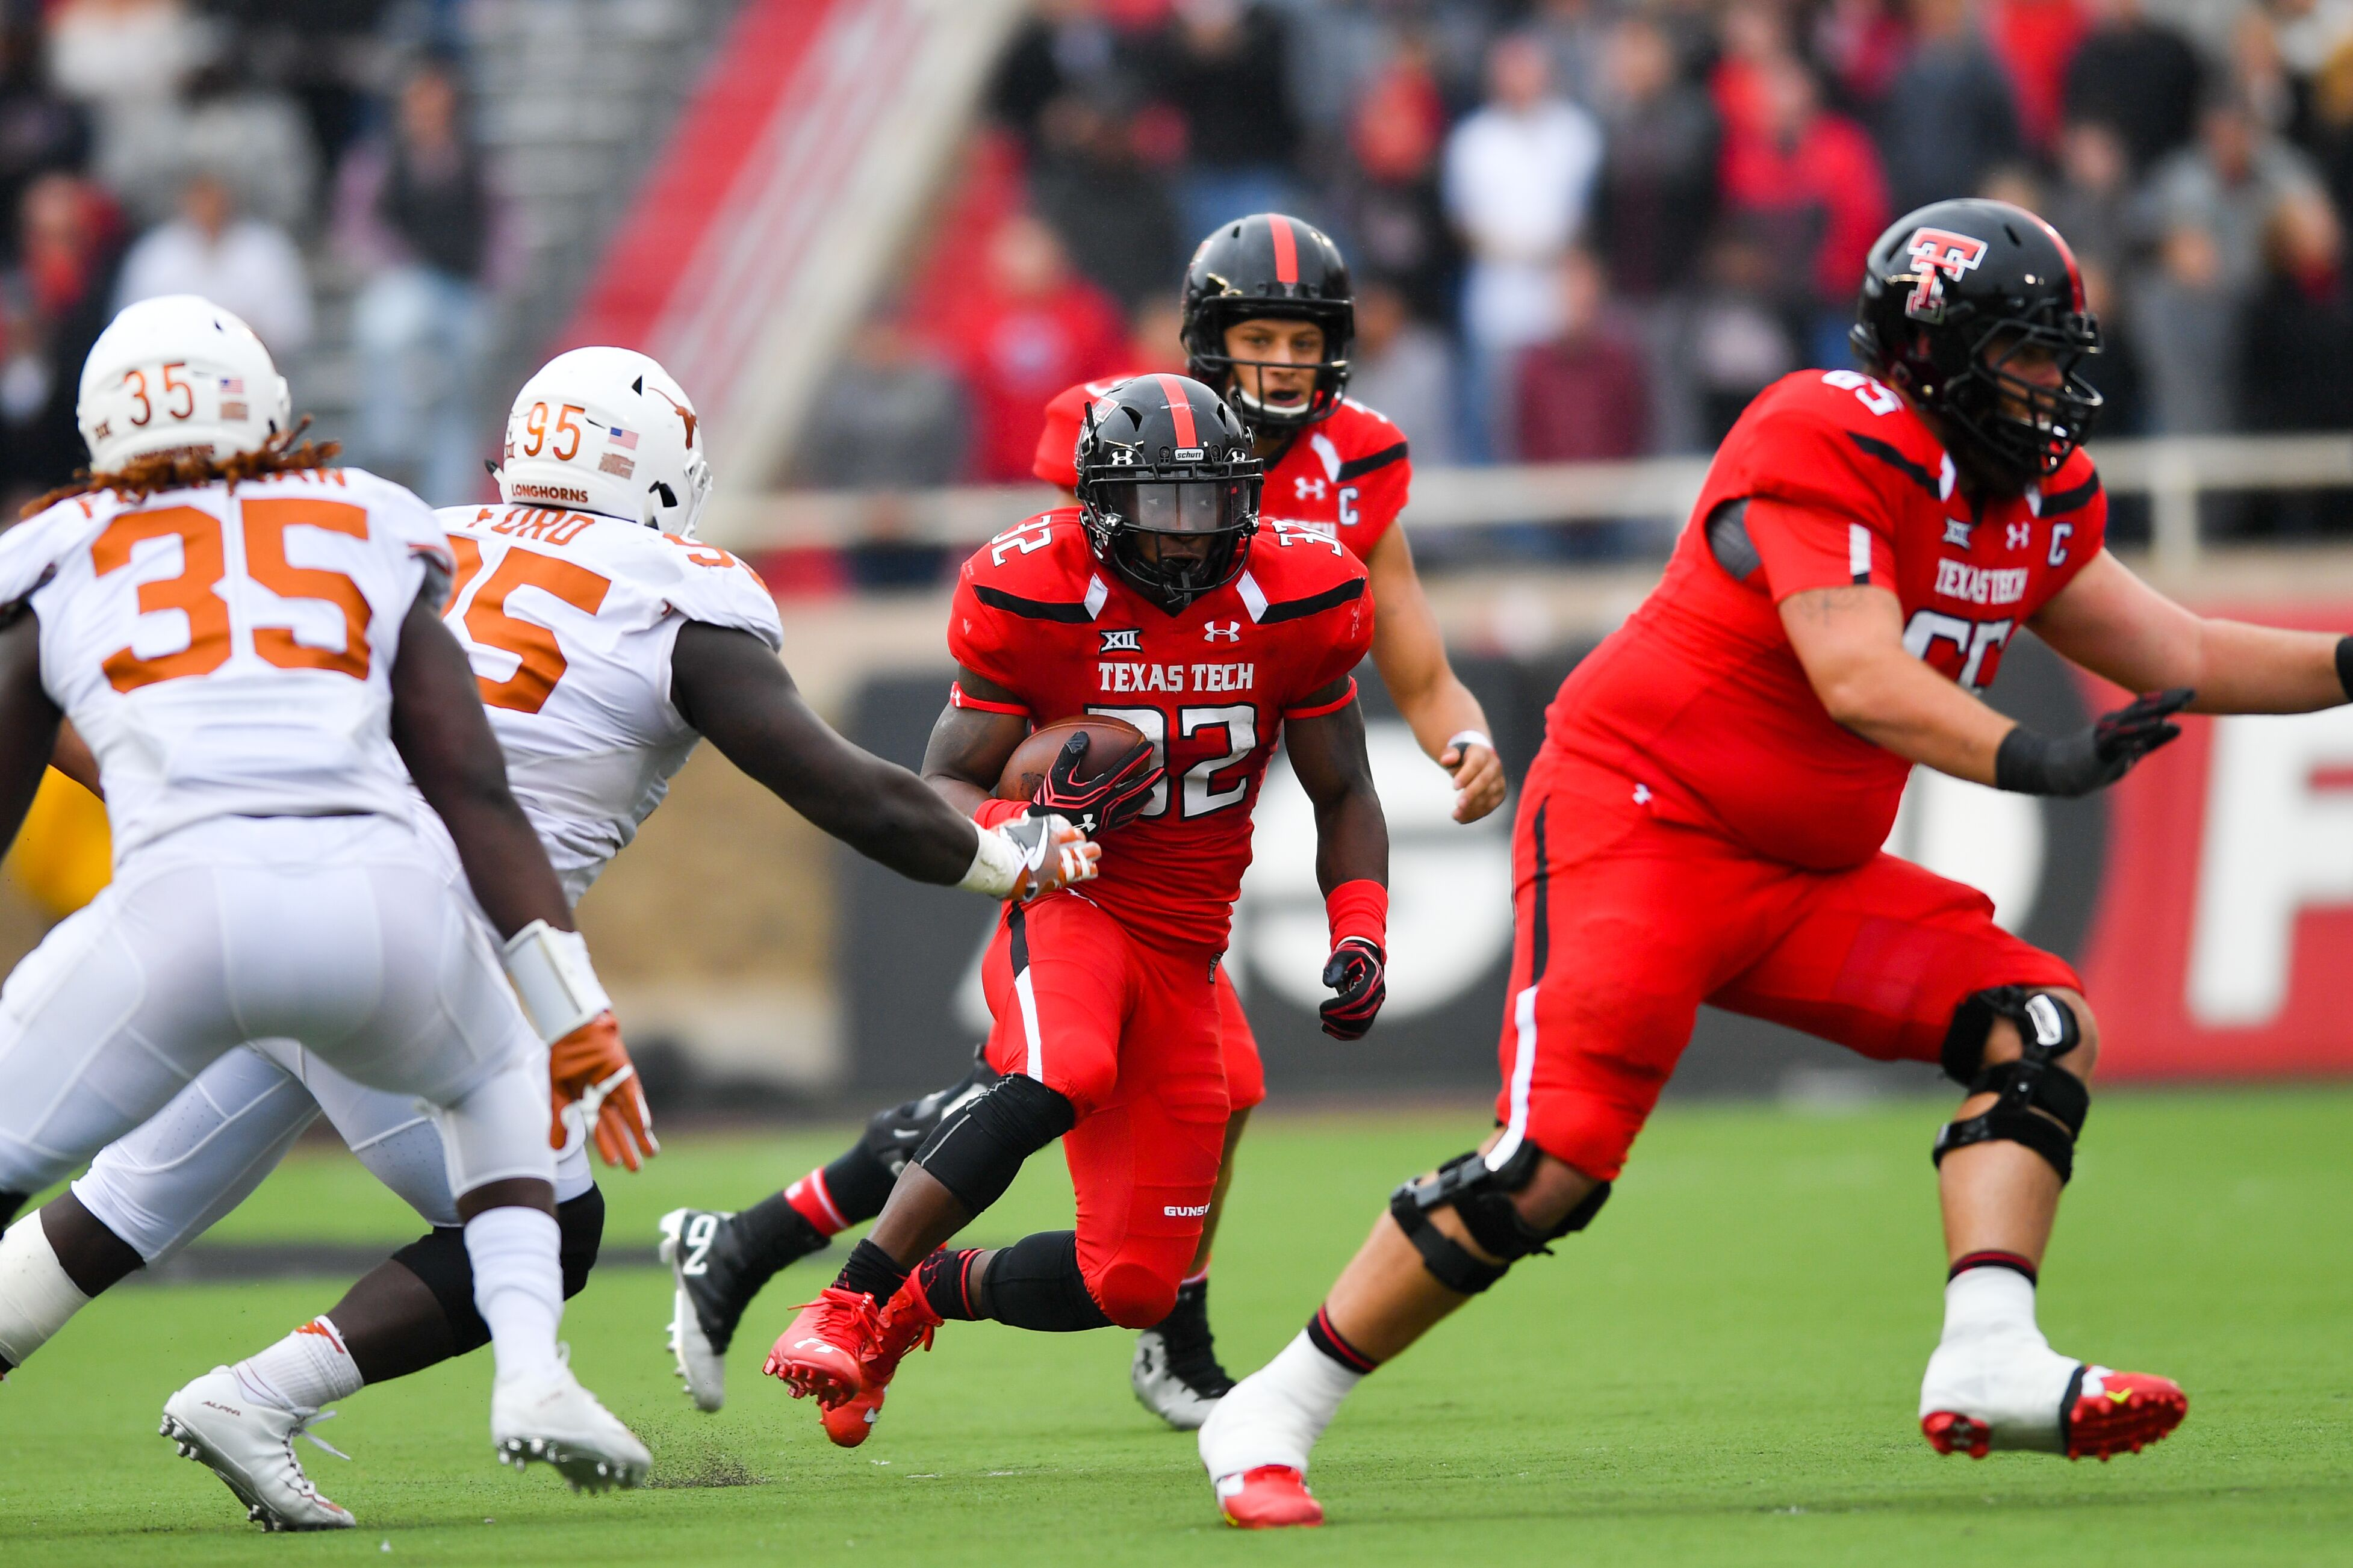 Texas Tech Red Raiders football schedule future football schedules nonconference opponents and news